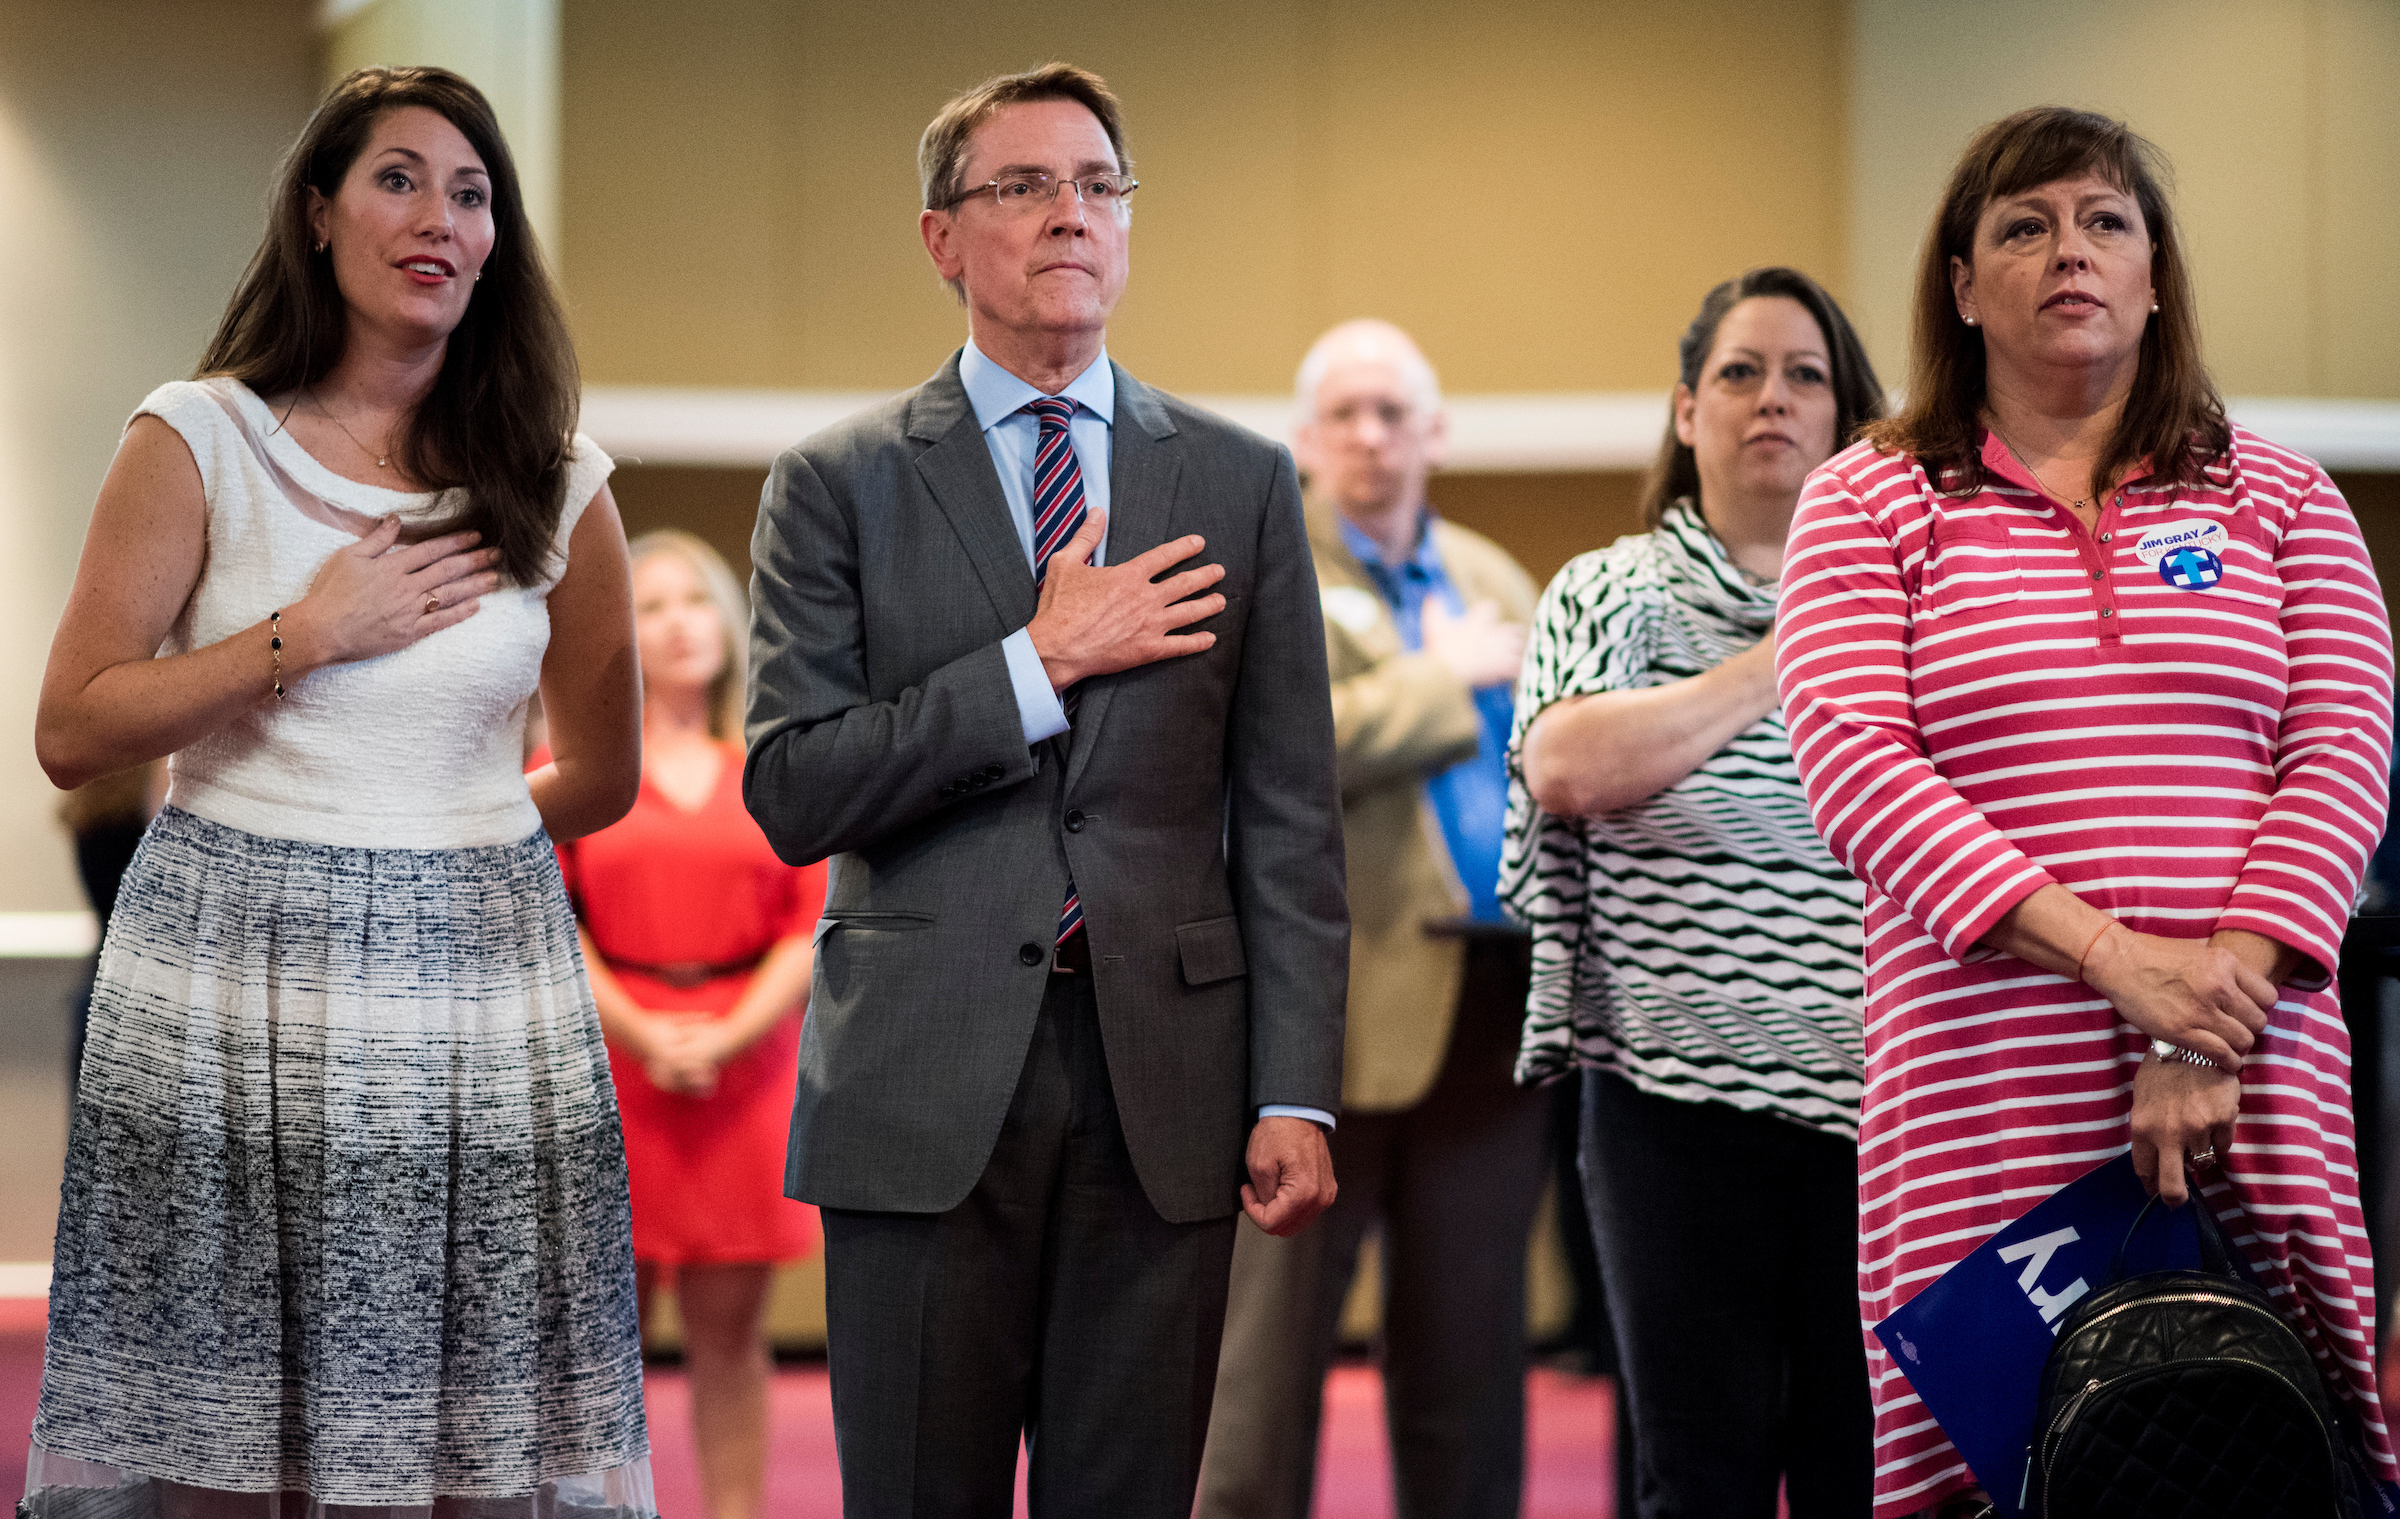 U.S. Senate candidate Jim Gray, center, and Kentucky Secretary of State Alison Lundergan Grimes, left, stand during the Pledge of Allegiance at the 11th annual Alben Barkley Dinner hosted by the McCracken County Democrats in Paducah, Kentucky, on Thursday, Aug. 4, 2016. (Bill Clark/CQ Roll Call)